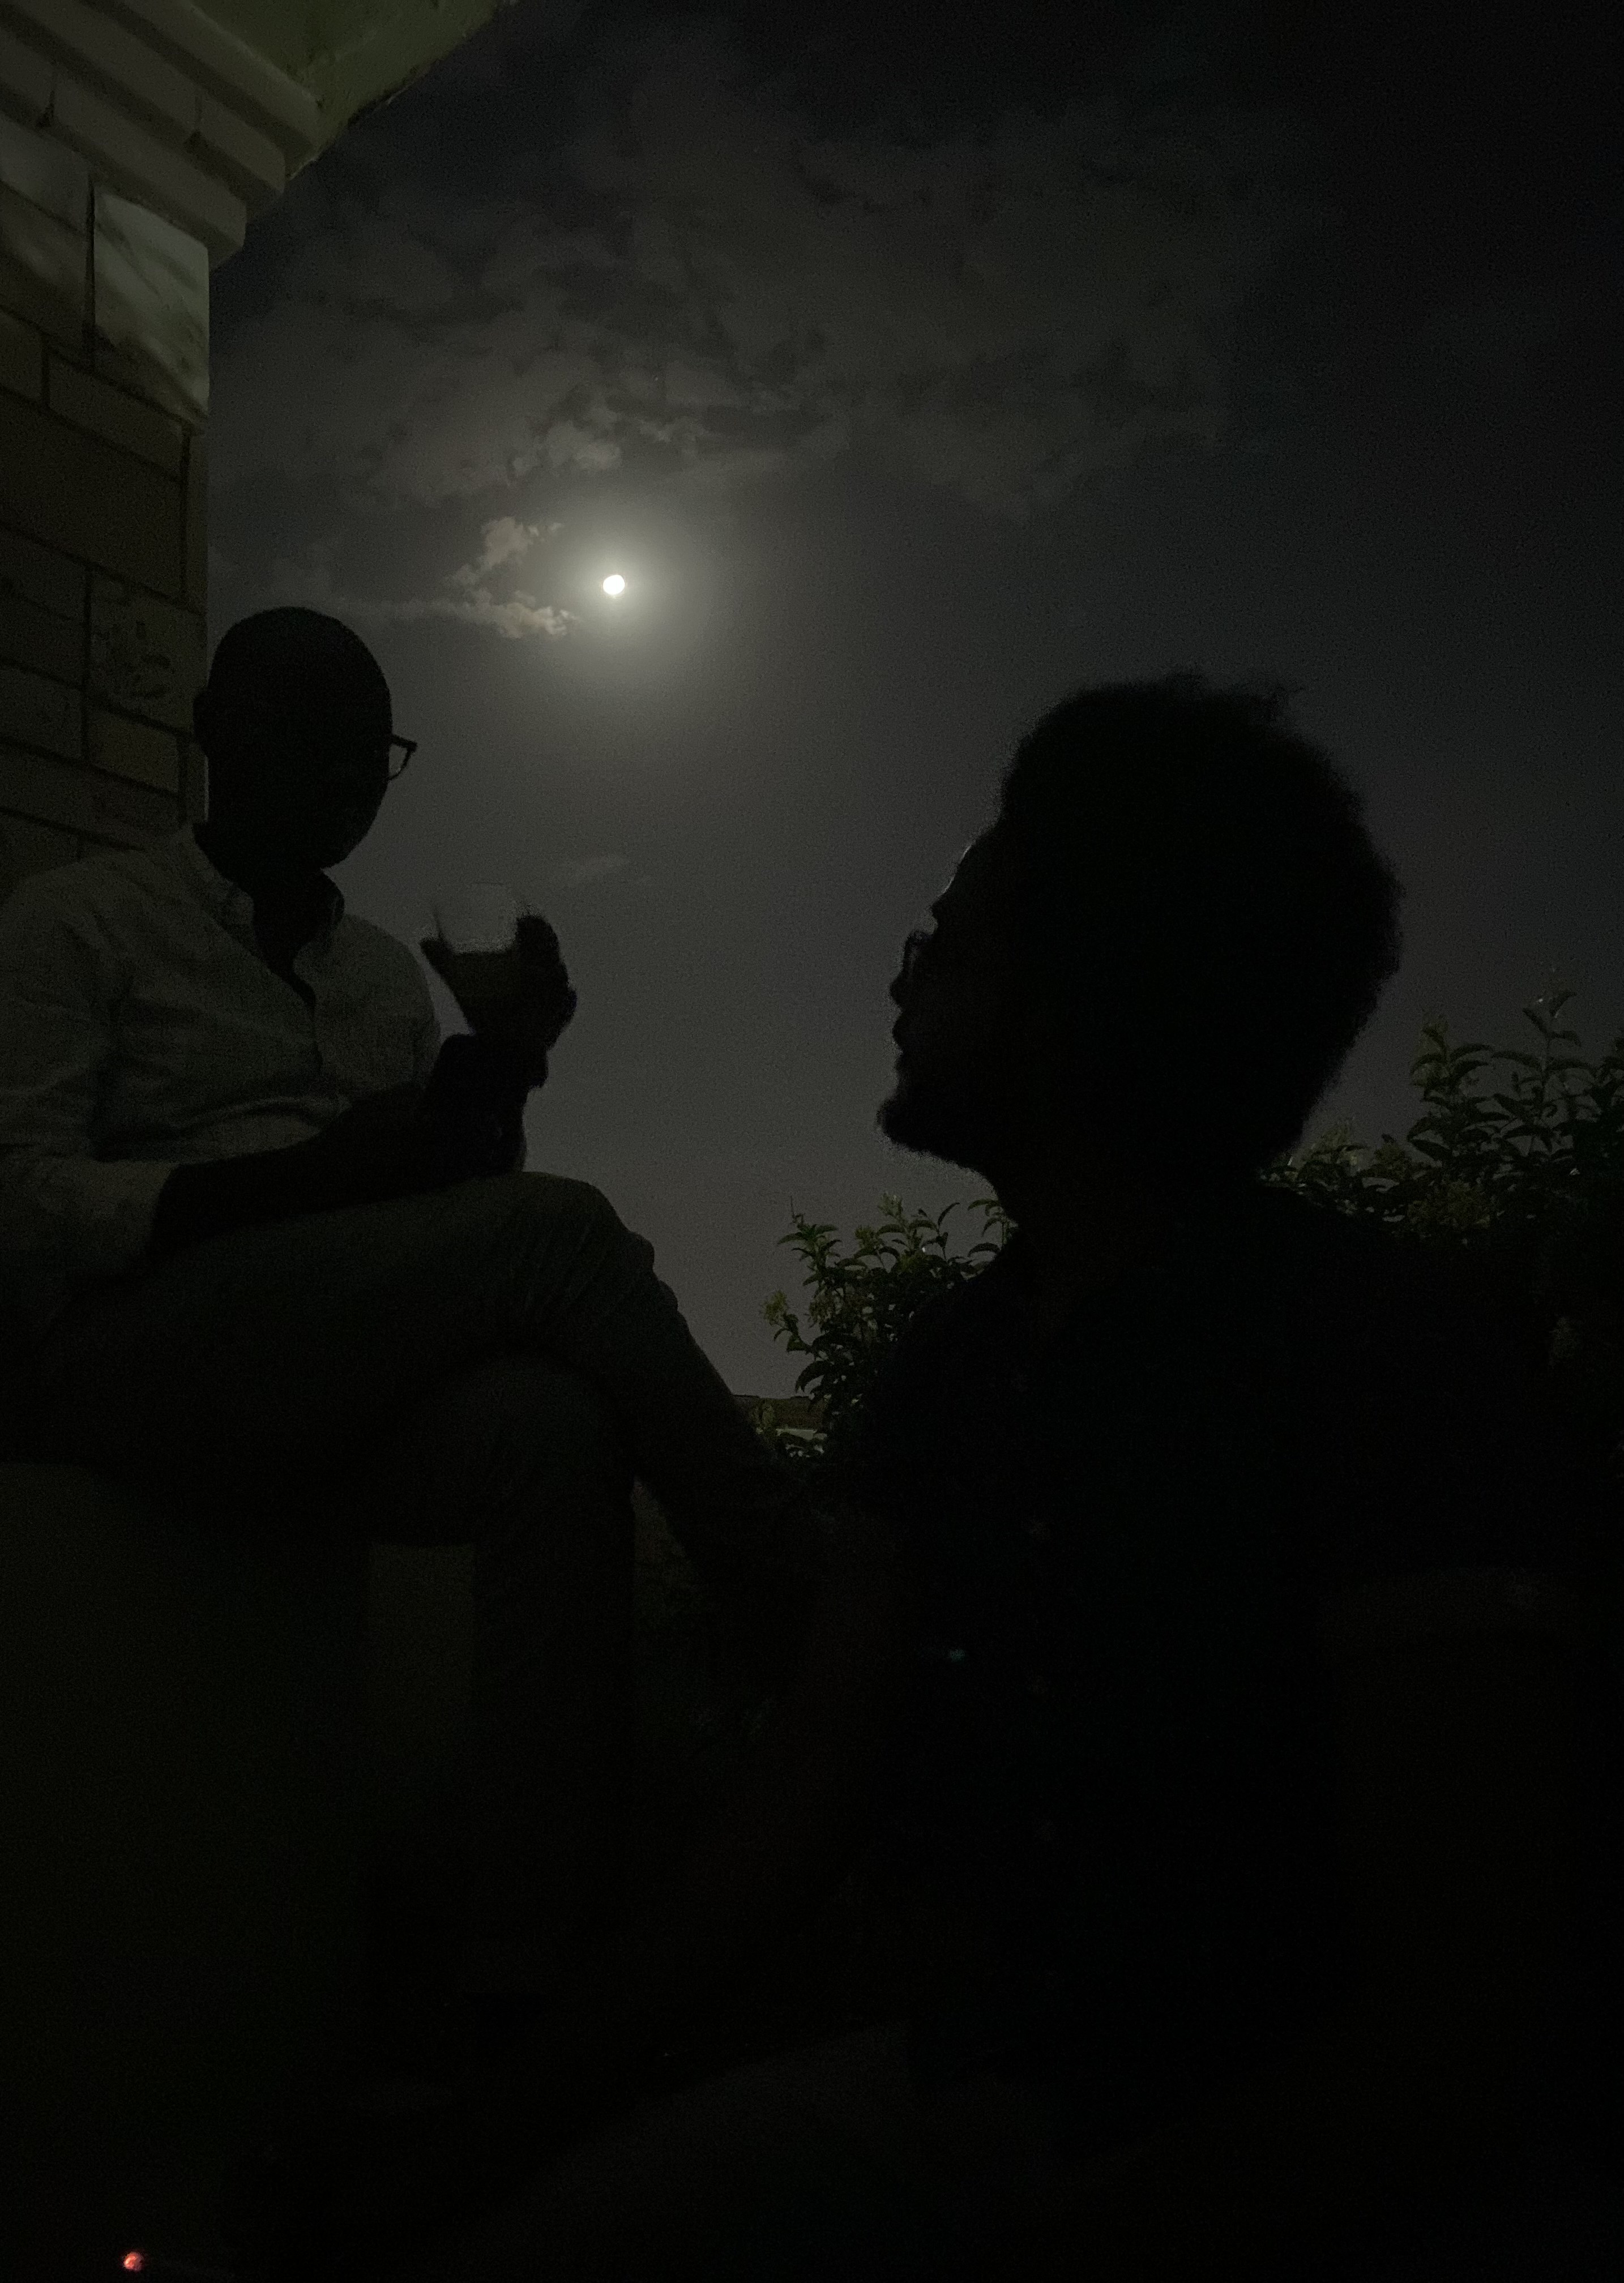 Two people talk under the moonlight at night.